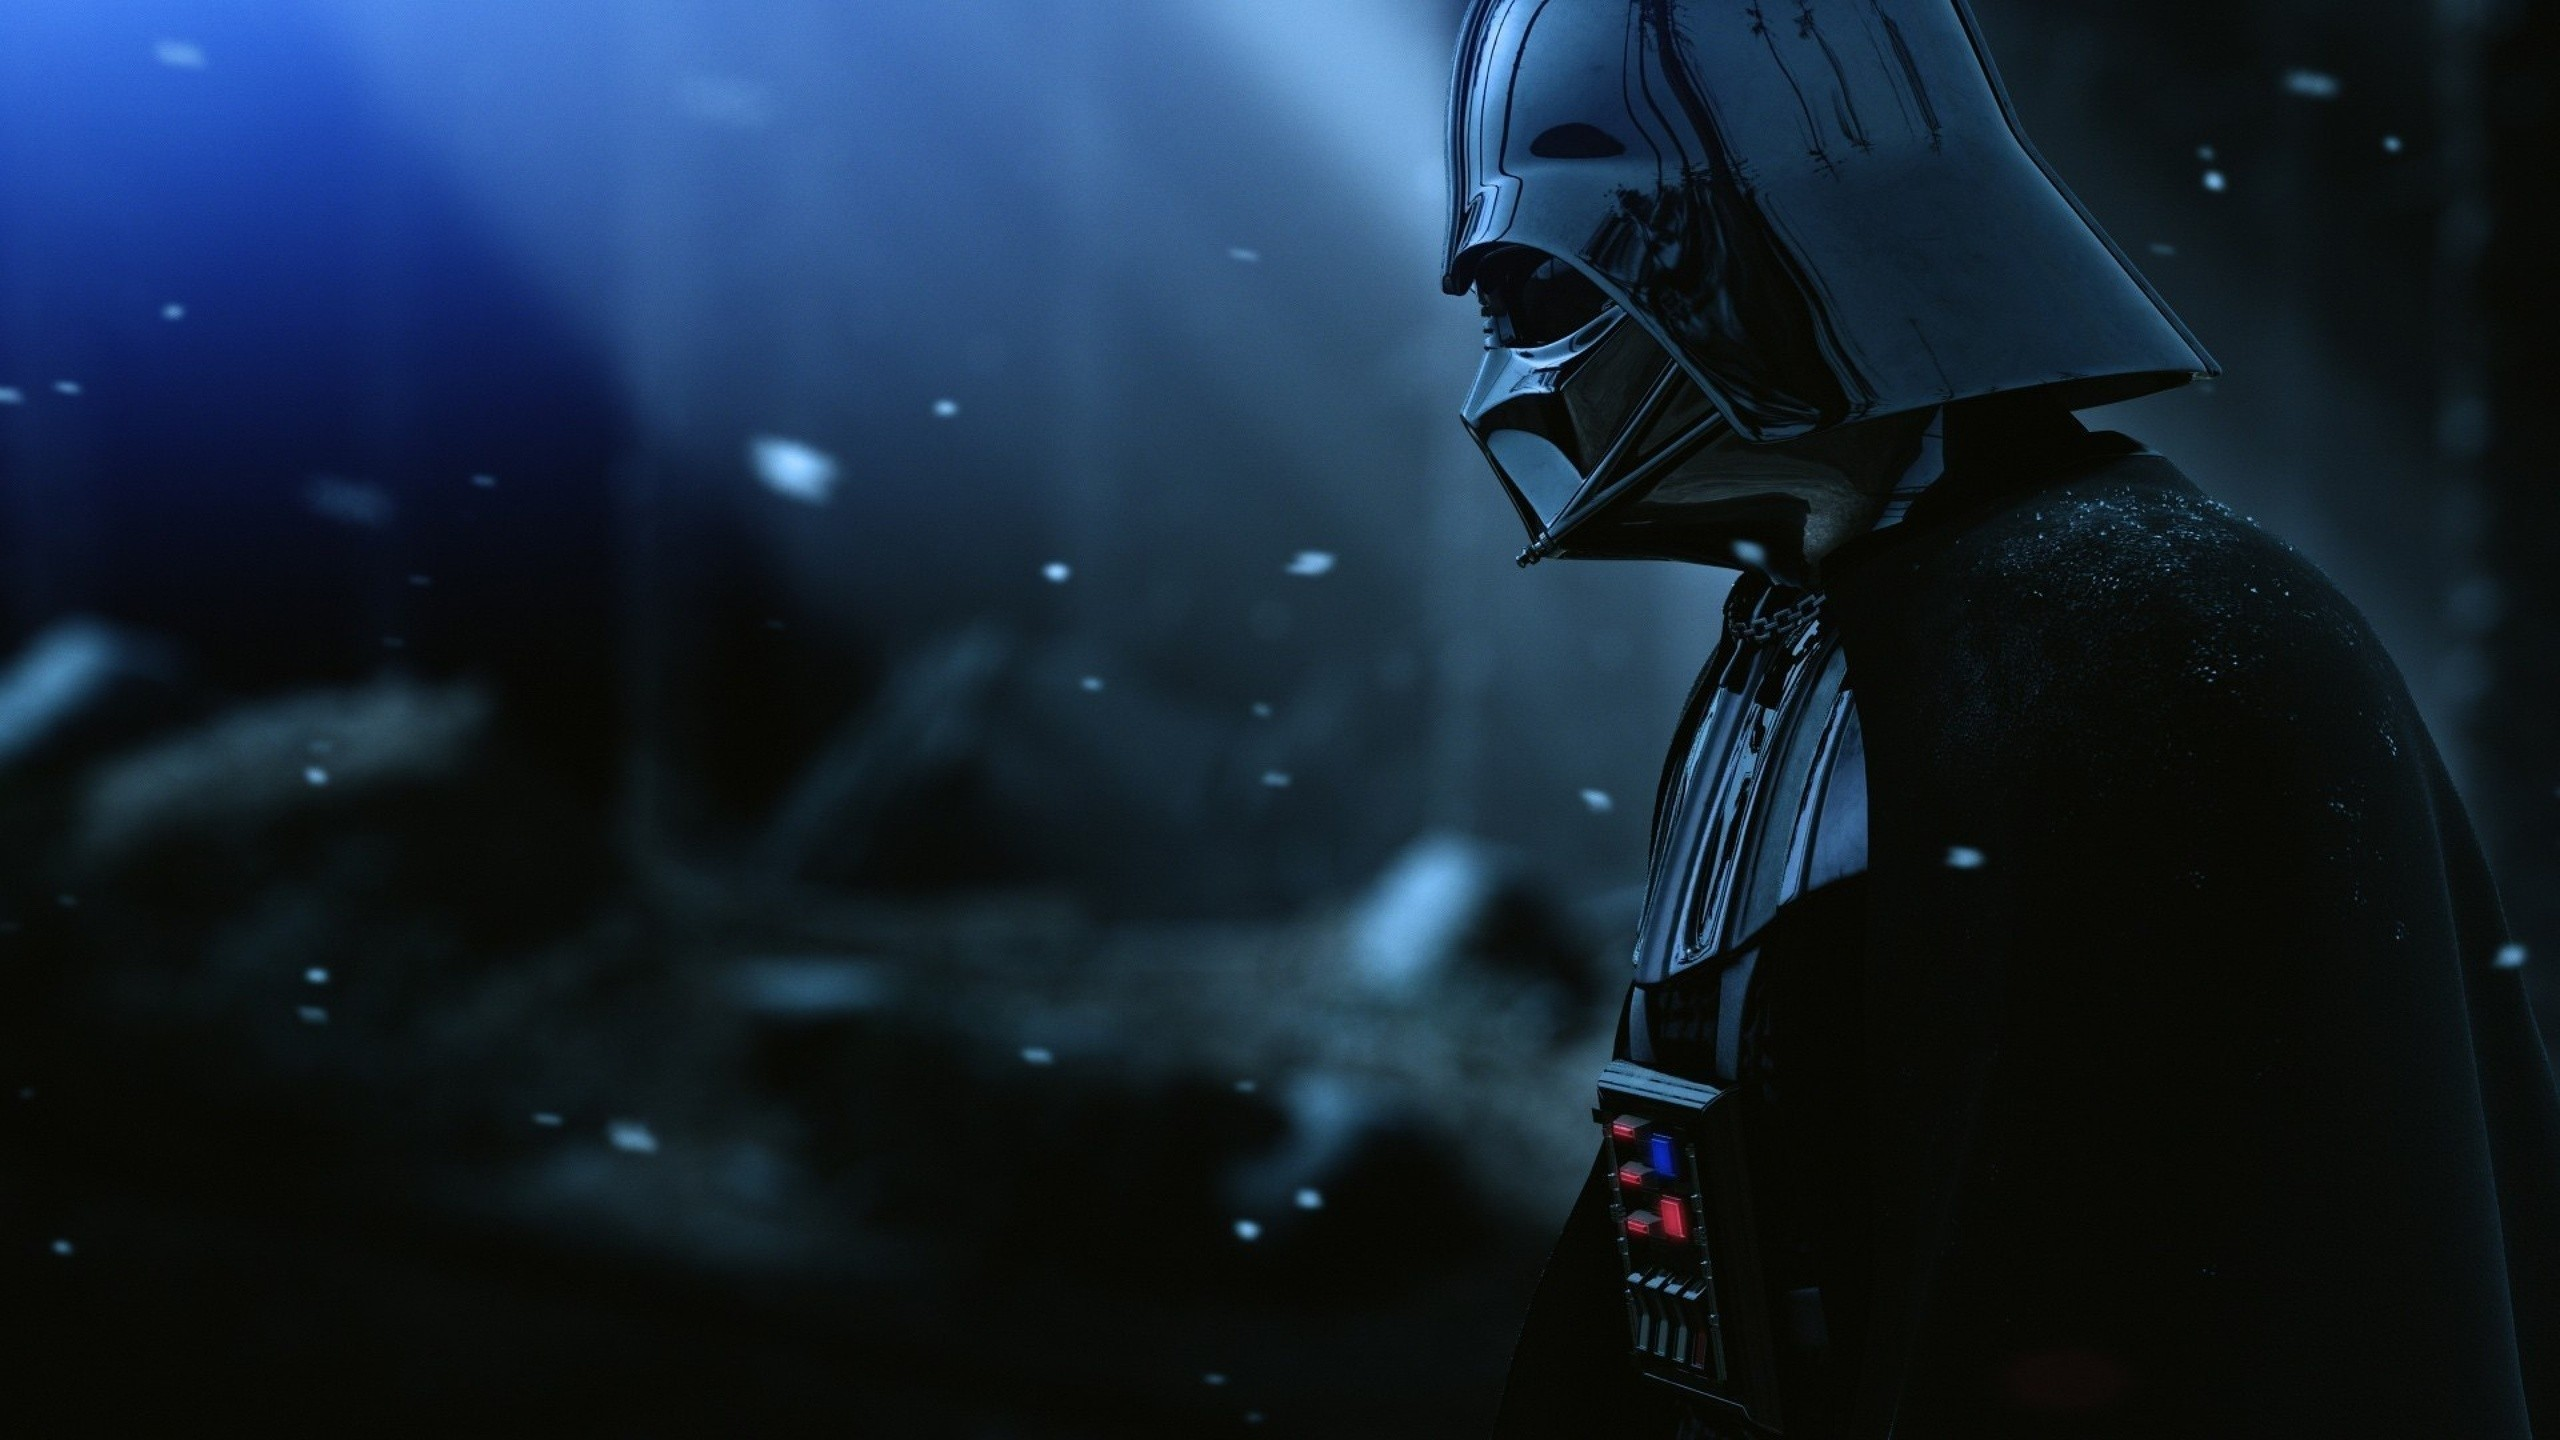 2560x1440 HD Wallpapers Darthvader Starwars Download Preview